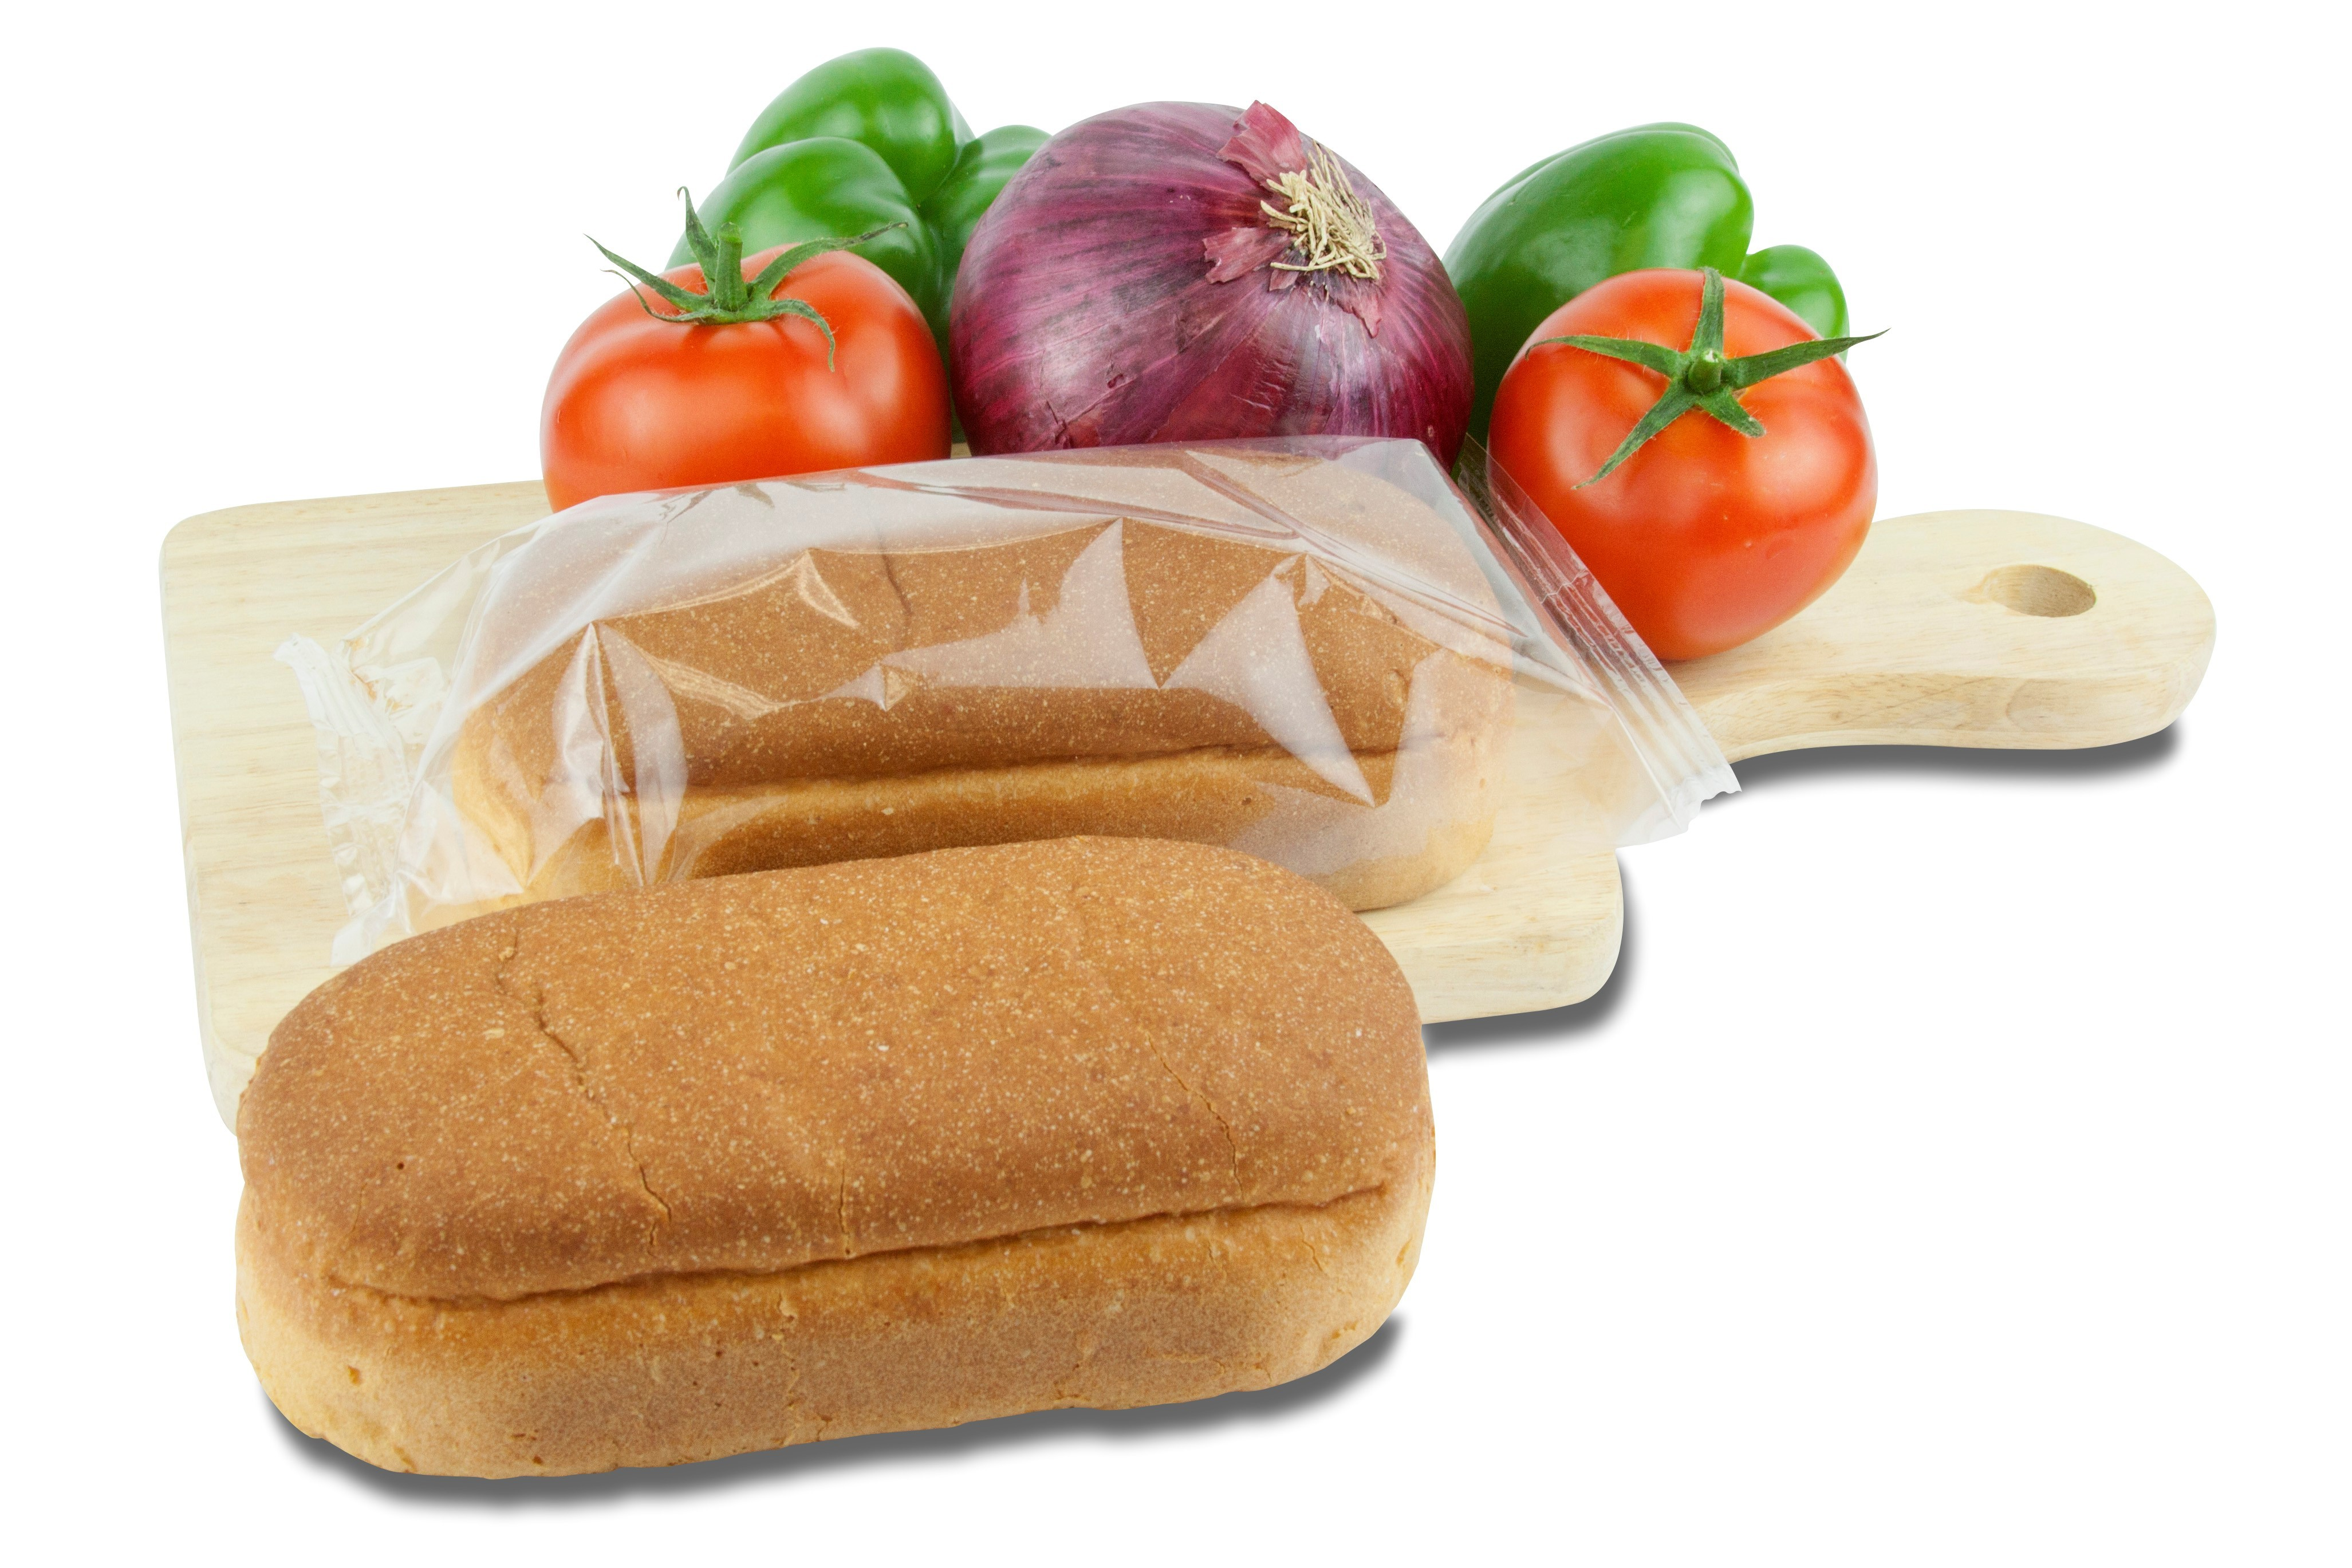 Made-Without-Gluten Bread Now at Subway - Gluten-Free Living